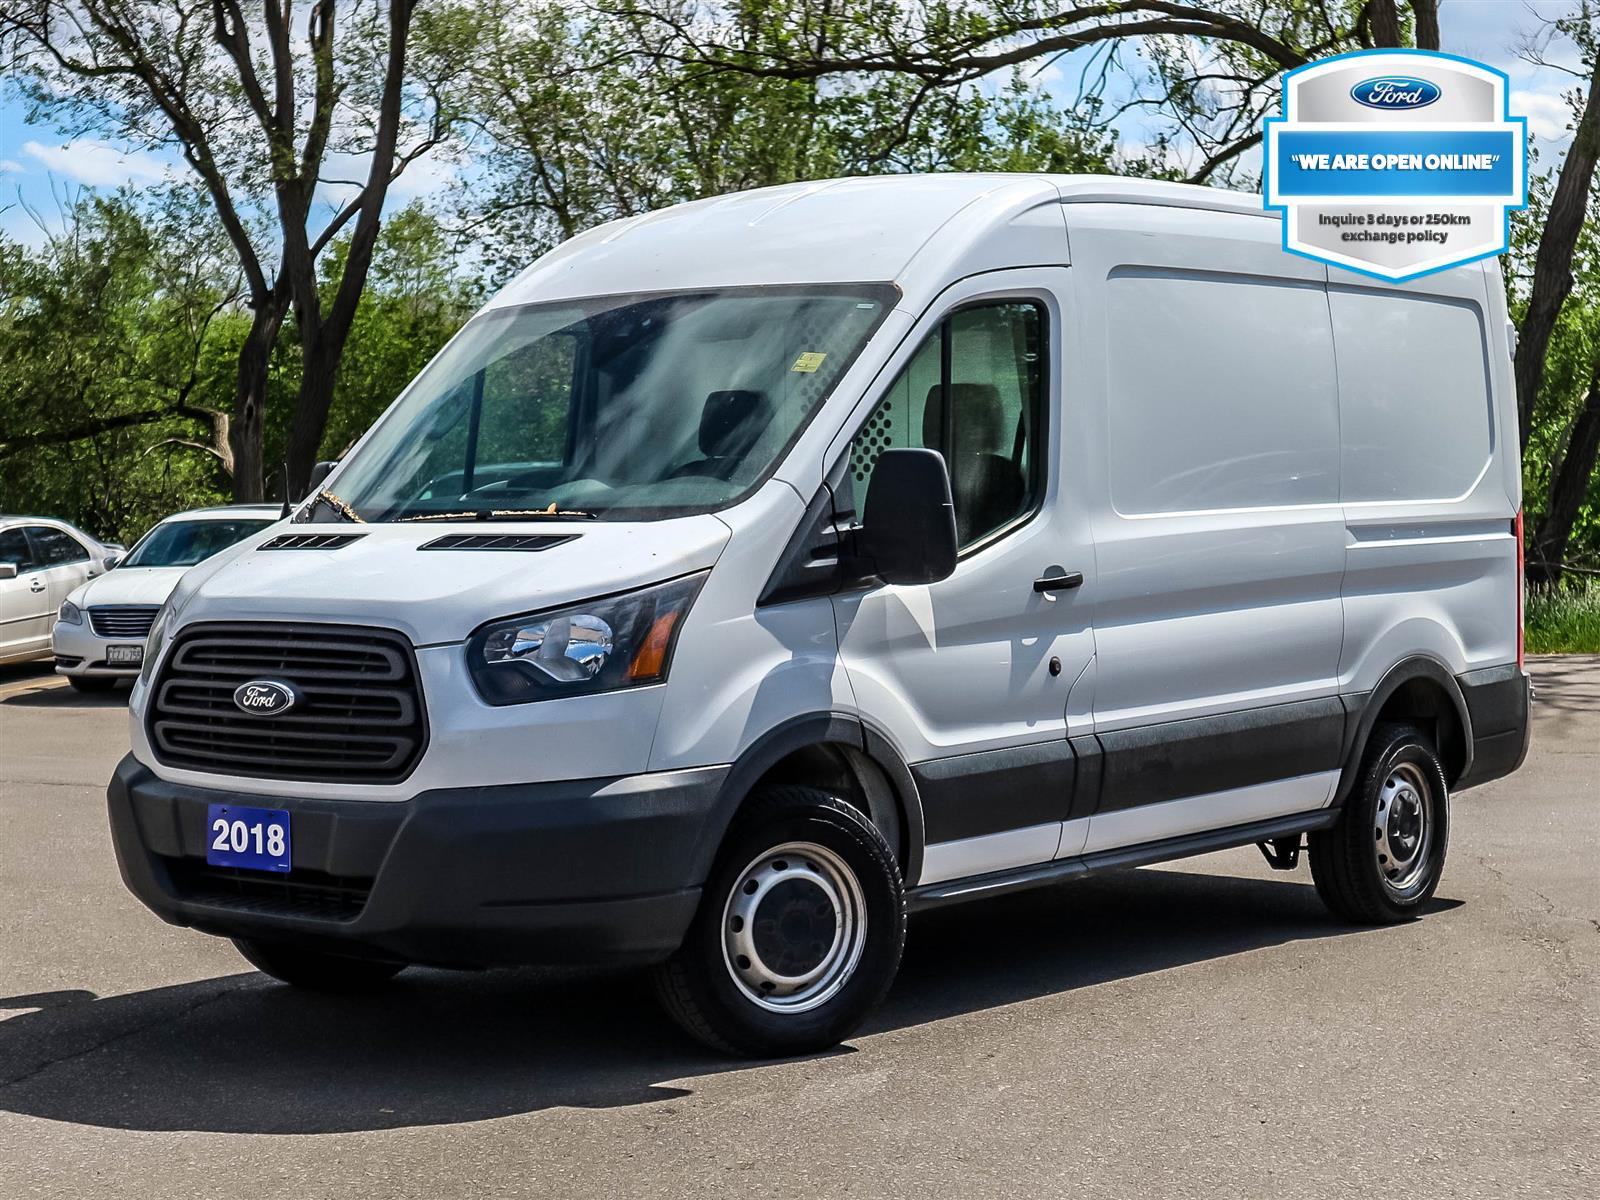 used 2018 Ford Transit-250 car, priced at $44,588